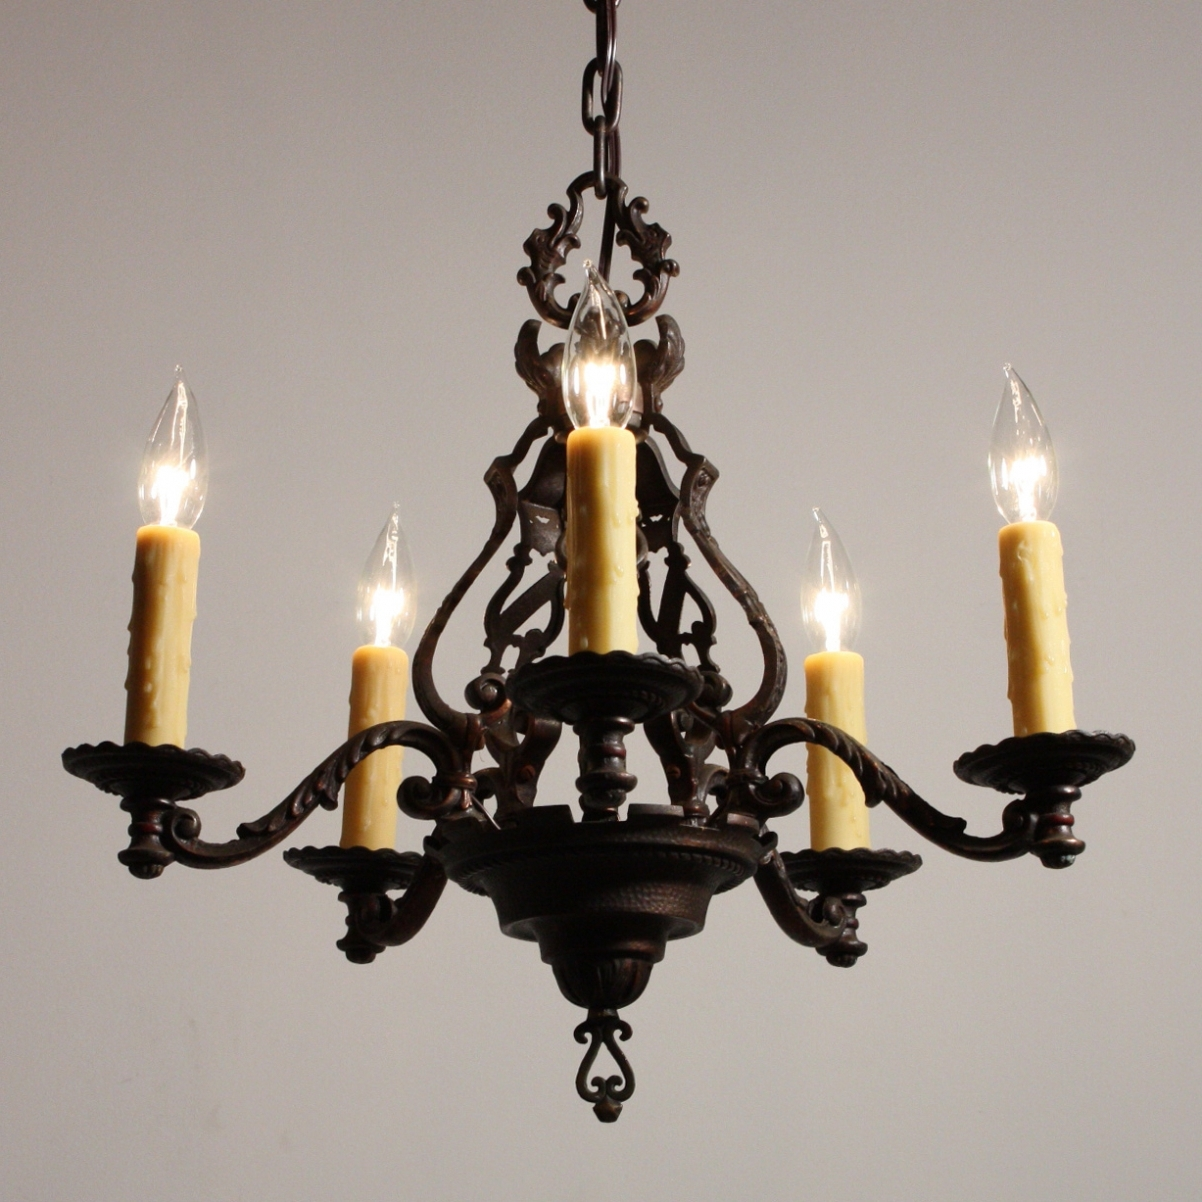 Fashionable Cast Iron Chandelier Intended For Antique Cast Iron Chandelier – Chandelier Designs (View 7 of 15)